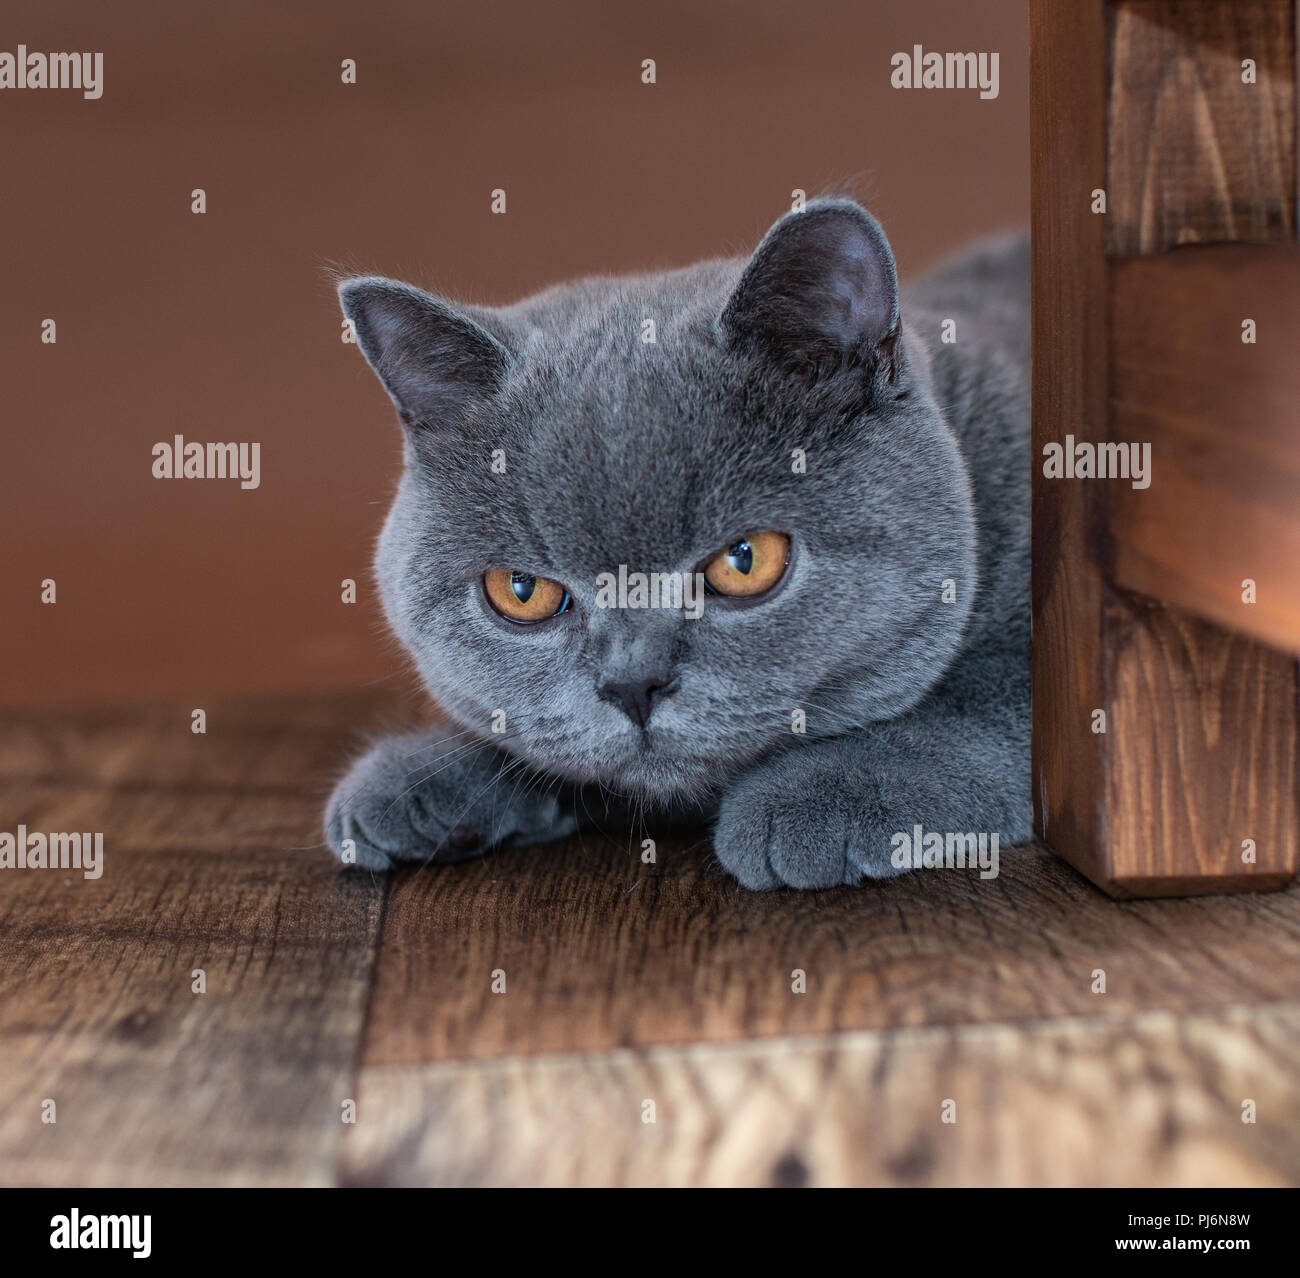 Amber Eyes Of Cat High Resolution Stock Photography And Images Alamy